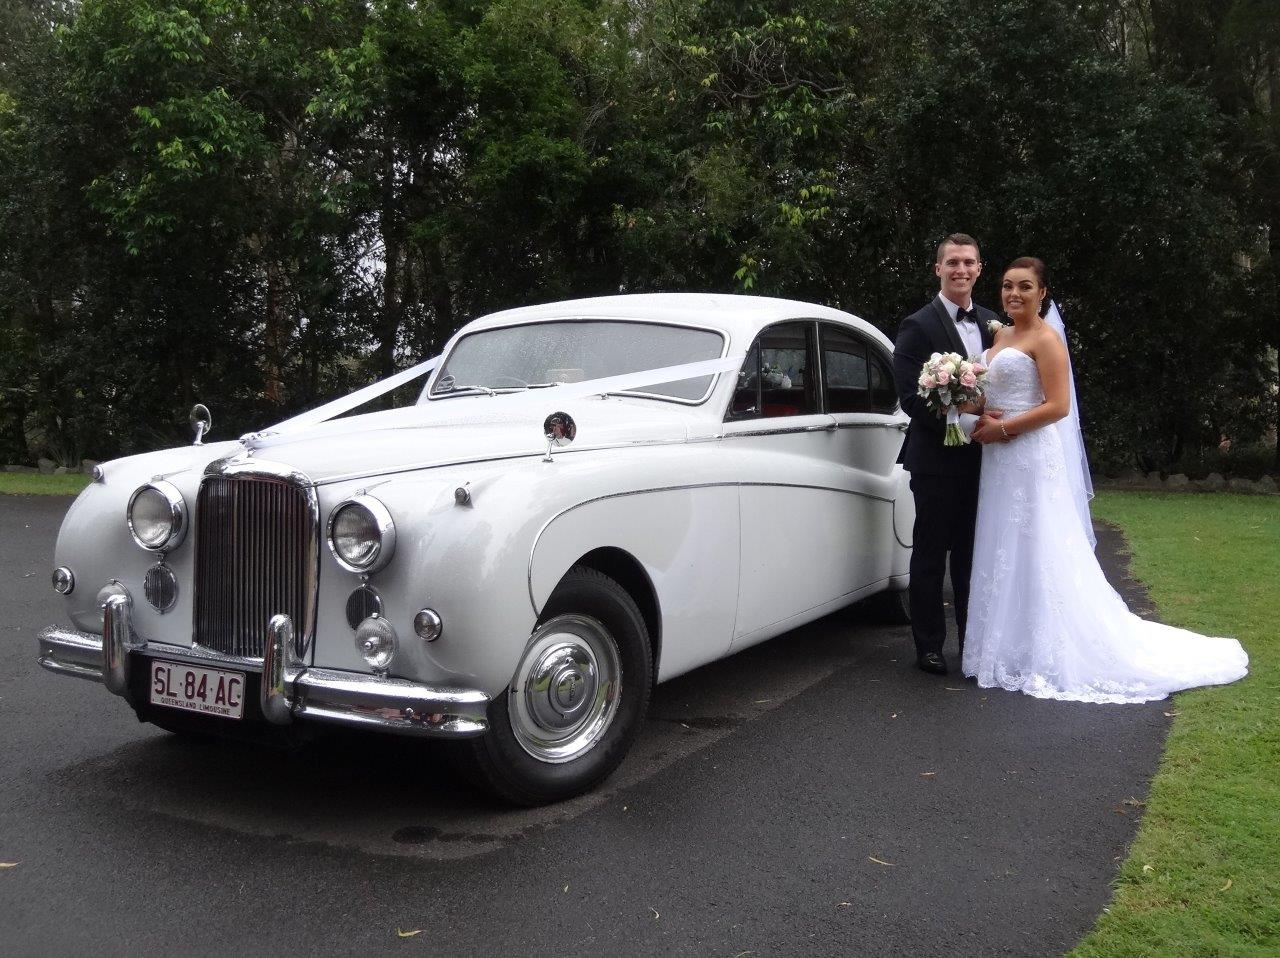 Jaguar Wedding Car with bride and groom